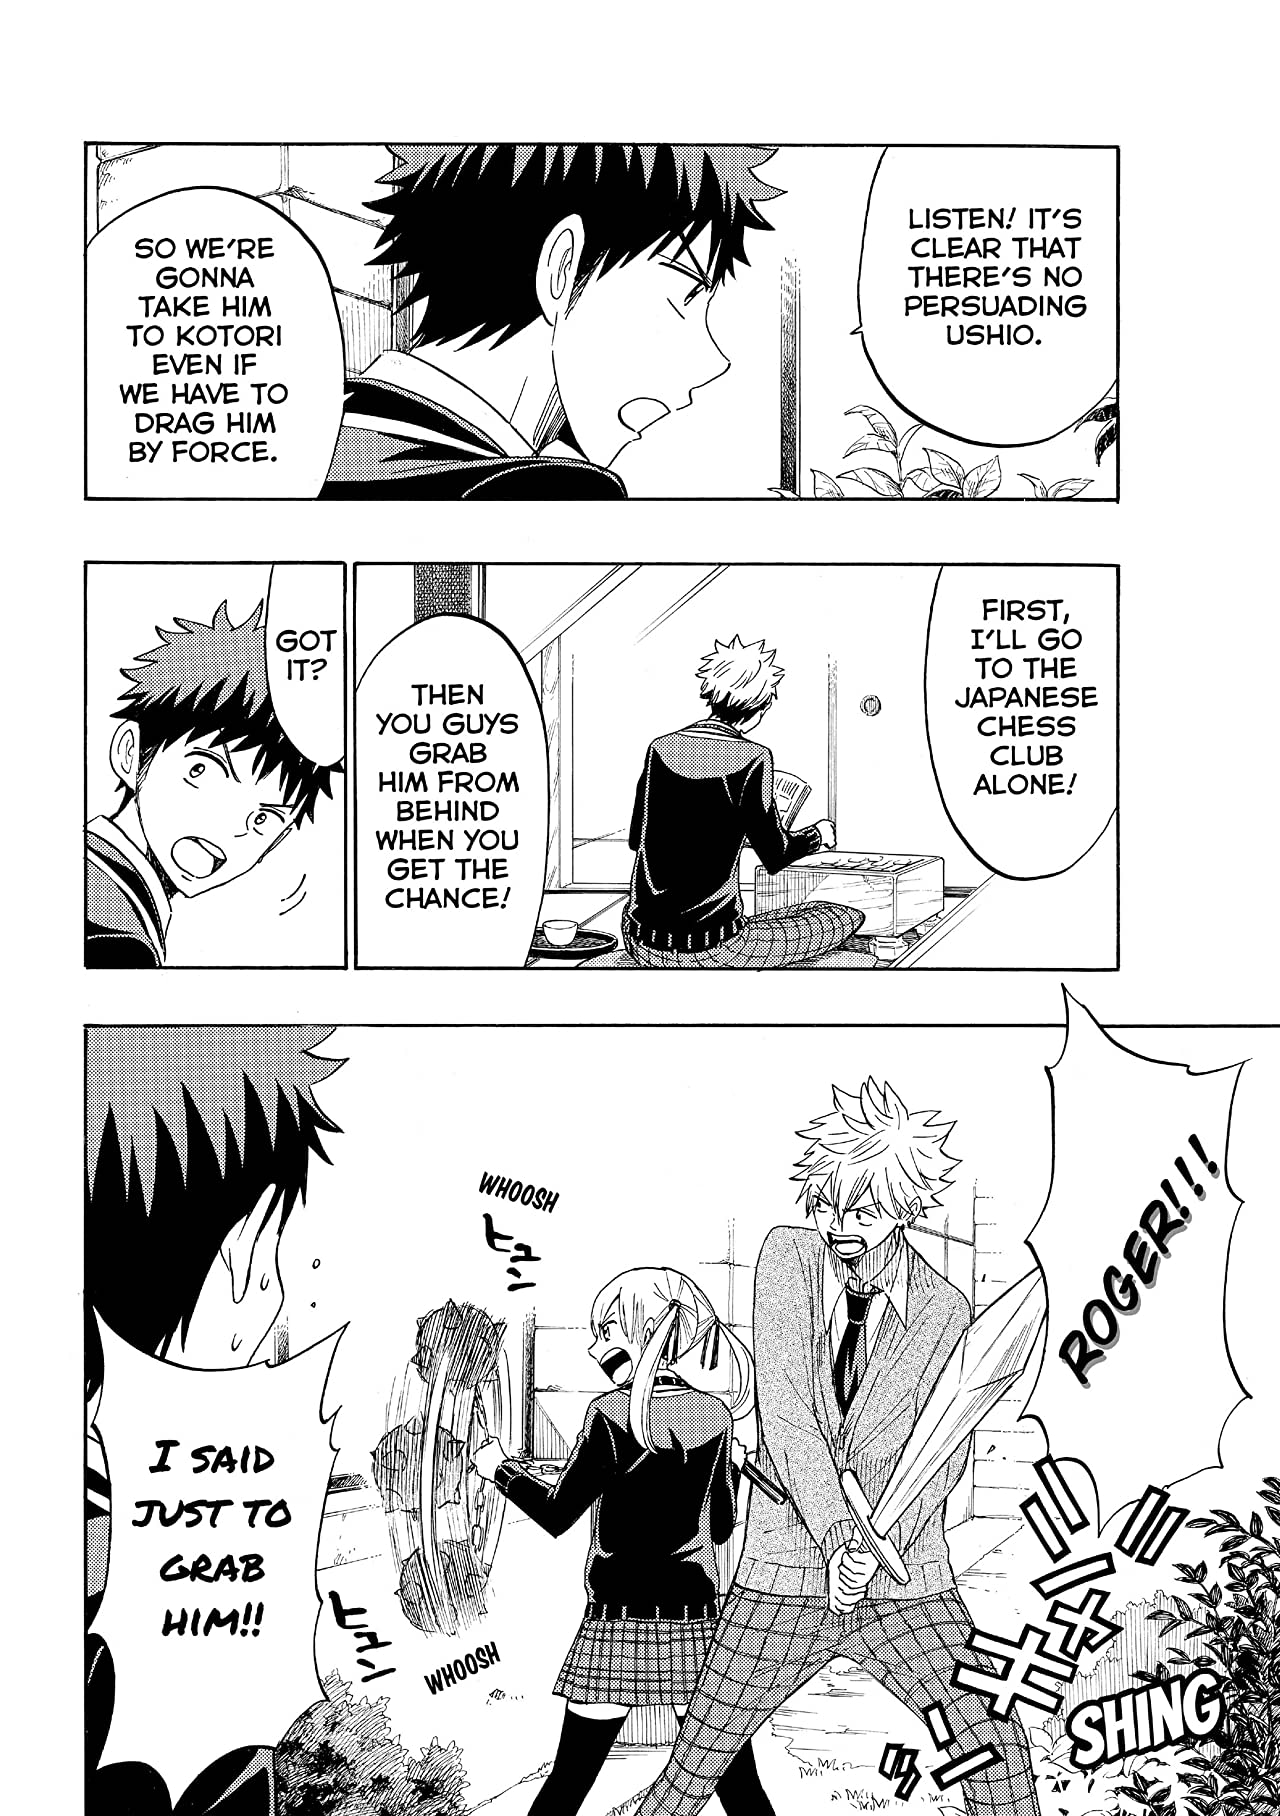 Yamada-kun and the Seven Witches #156